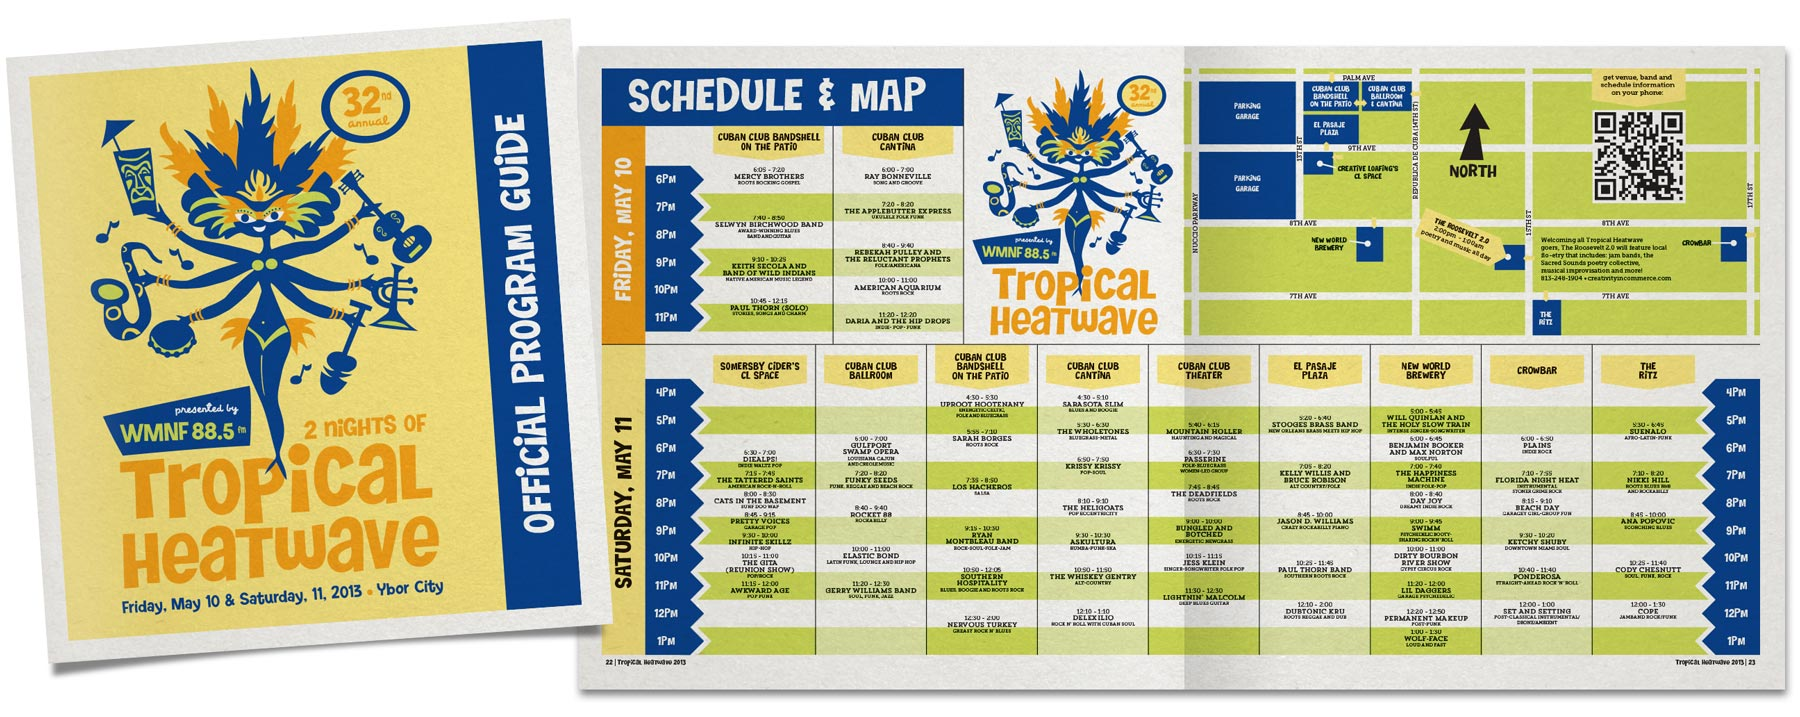 Layout design for the WMNF Tropical Heatwave Official Program Guide. The challenge with this piece was to create a user-friendly pull-out schedule that covered two days of shows on 9 separate stages. (logo design/illustration by Heather Manning)